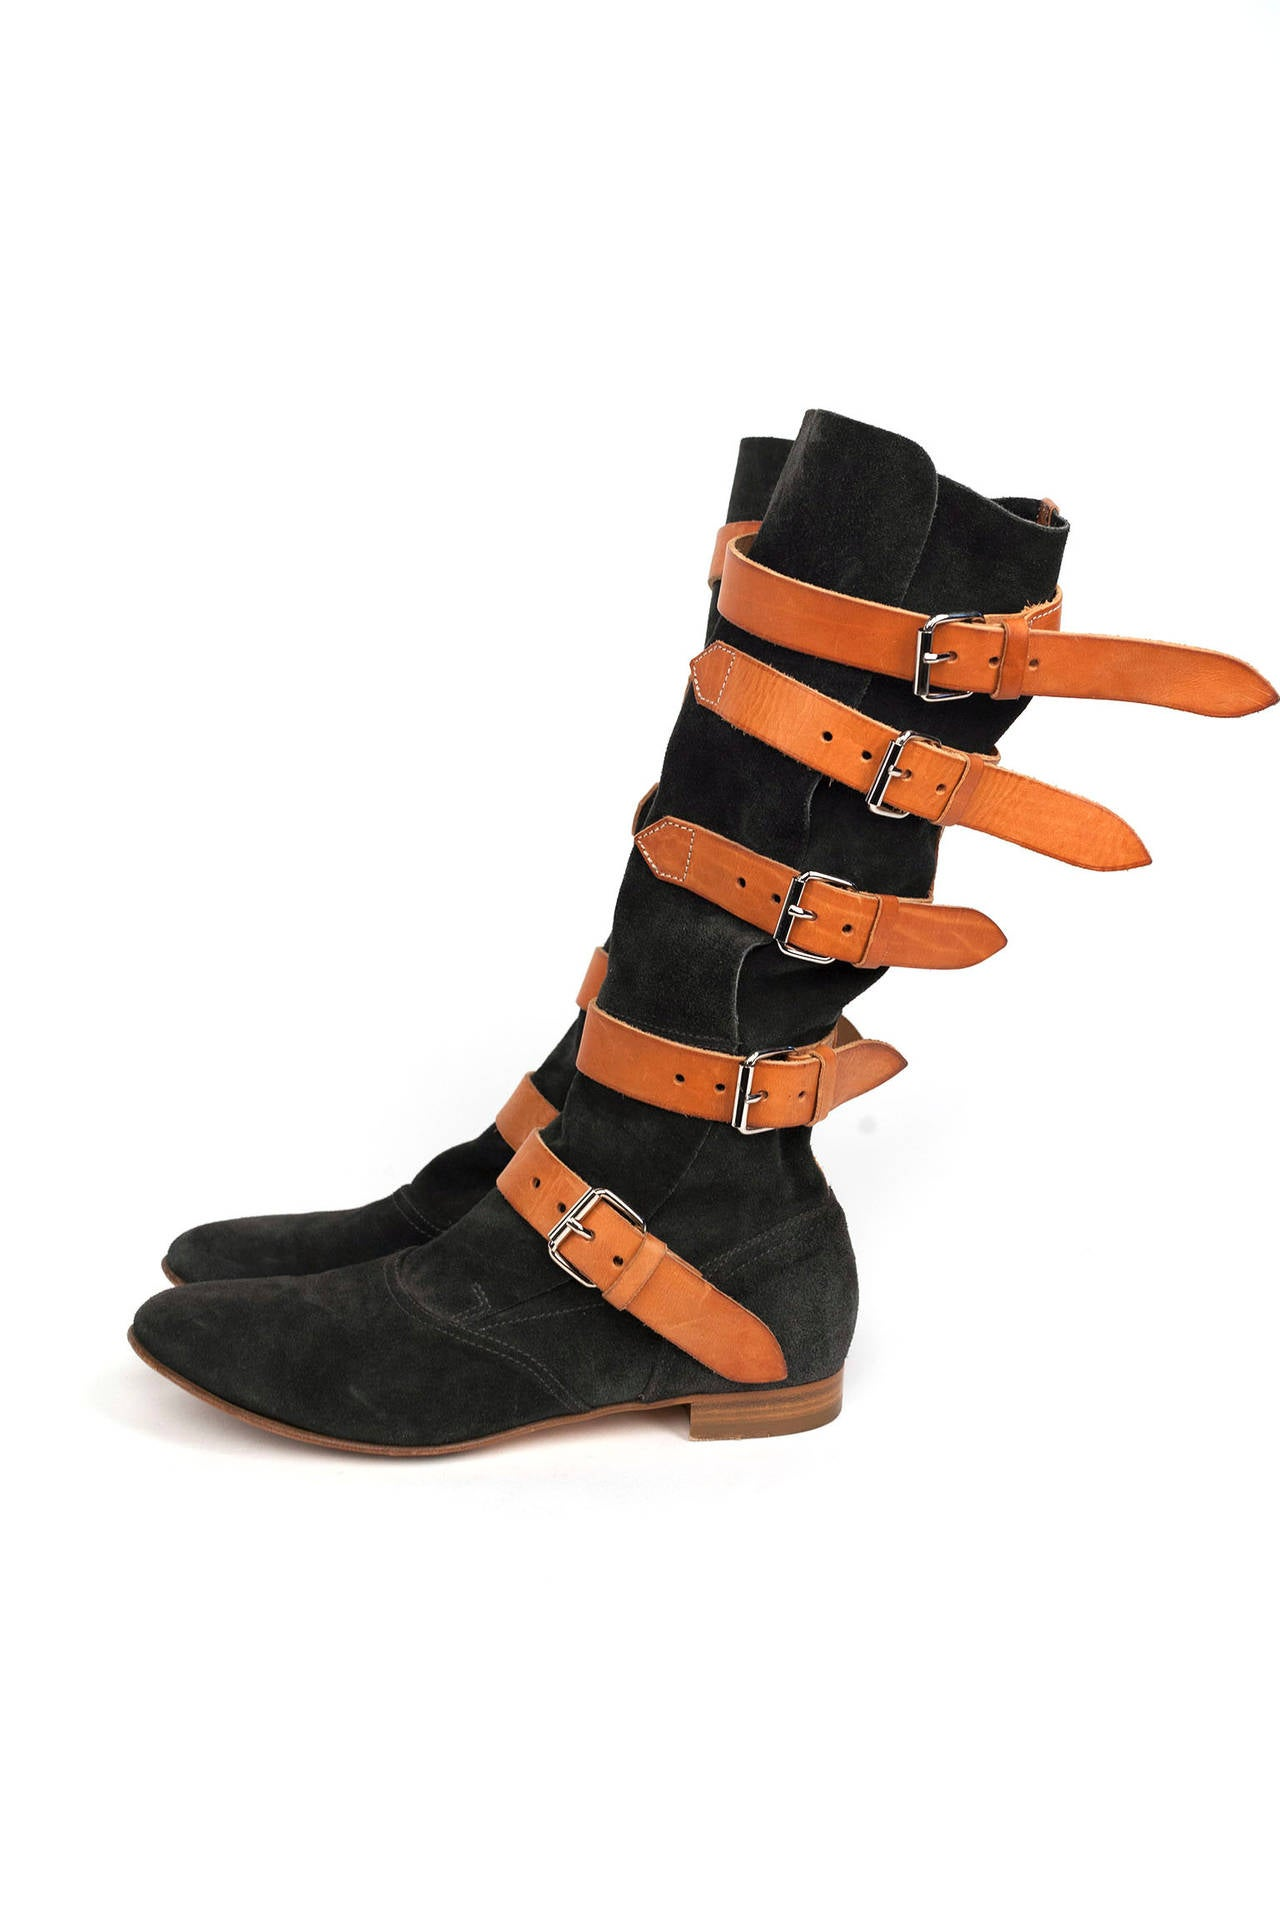 vivienne westwood limited edition suede pirate boots at